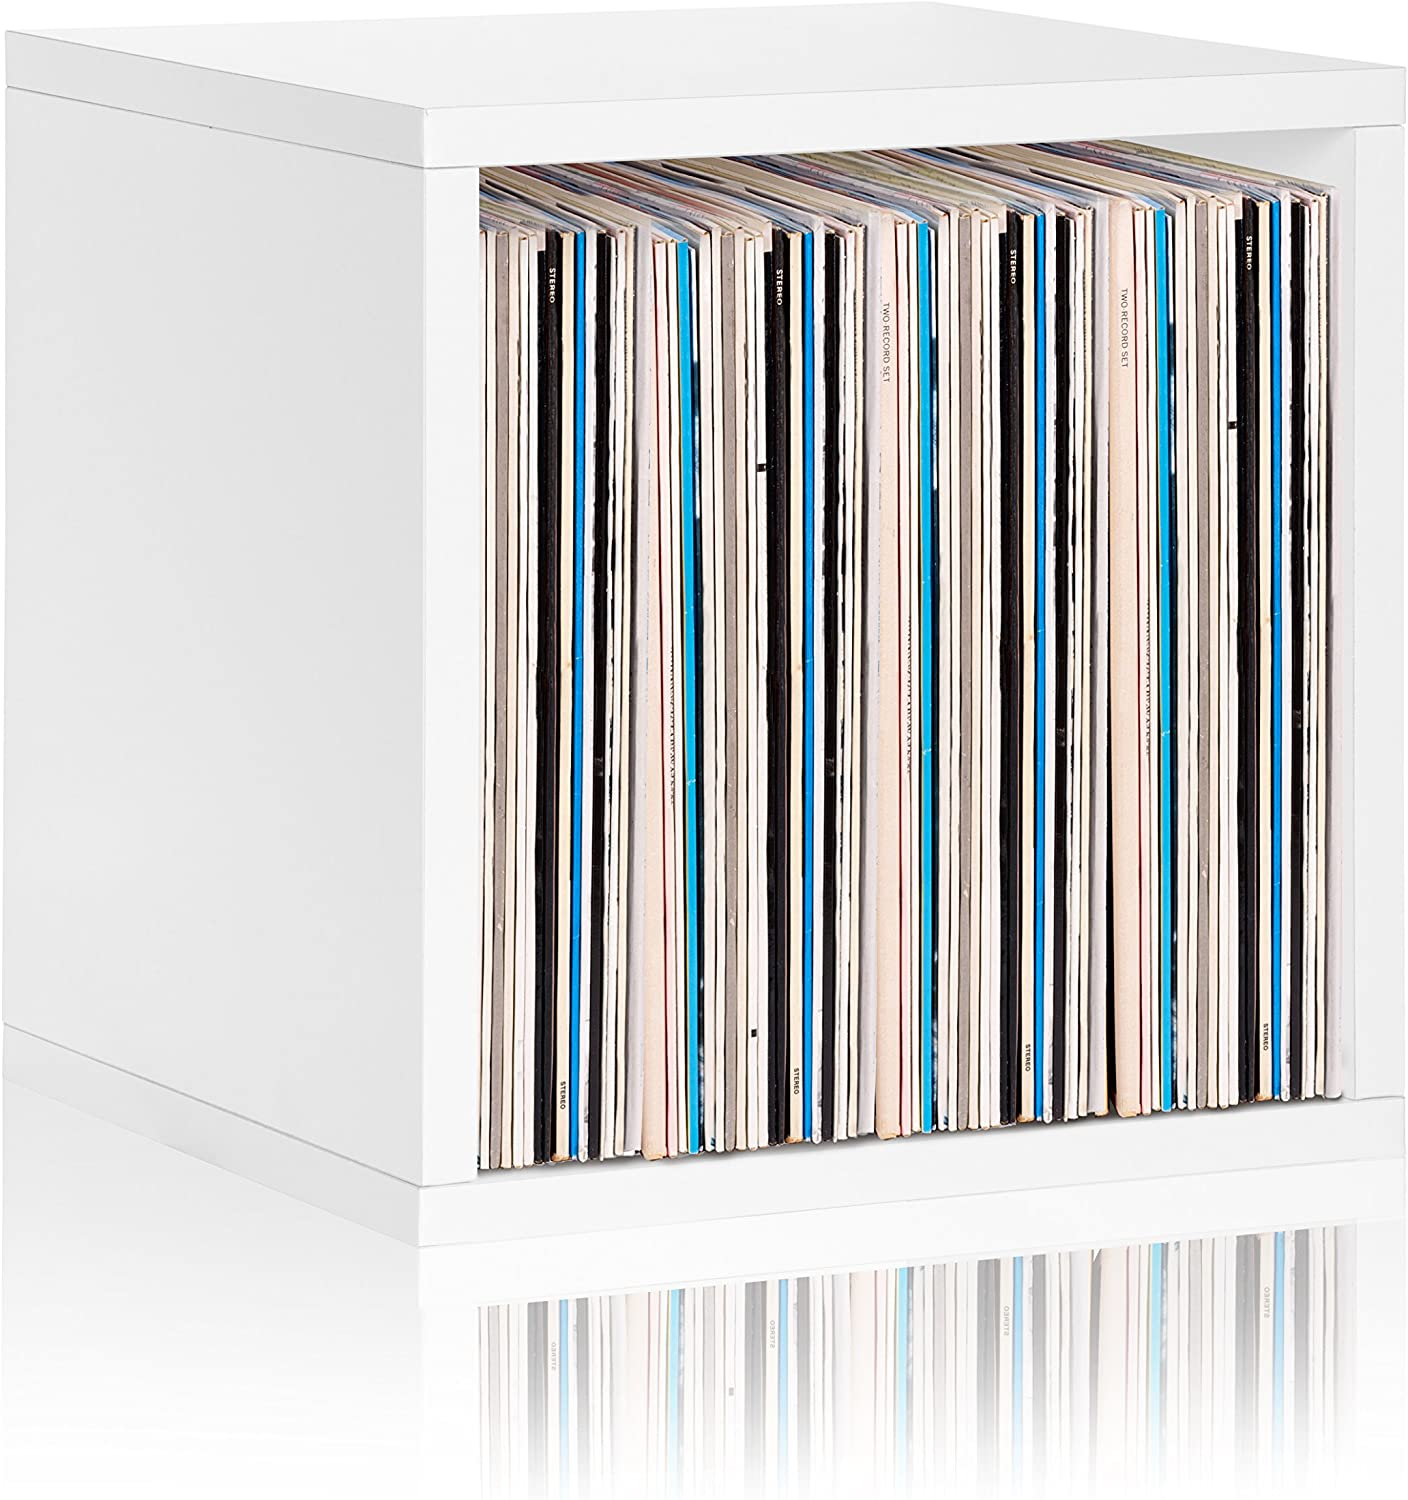 Way Basics Vinyl Record Storage Blox Cube, Organizer Shelf - Fits 65-70 LP Records (Tool-Free Assembly and Uniquely Crafted from Sustainable Non Toxic zBoard Paperboard) White